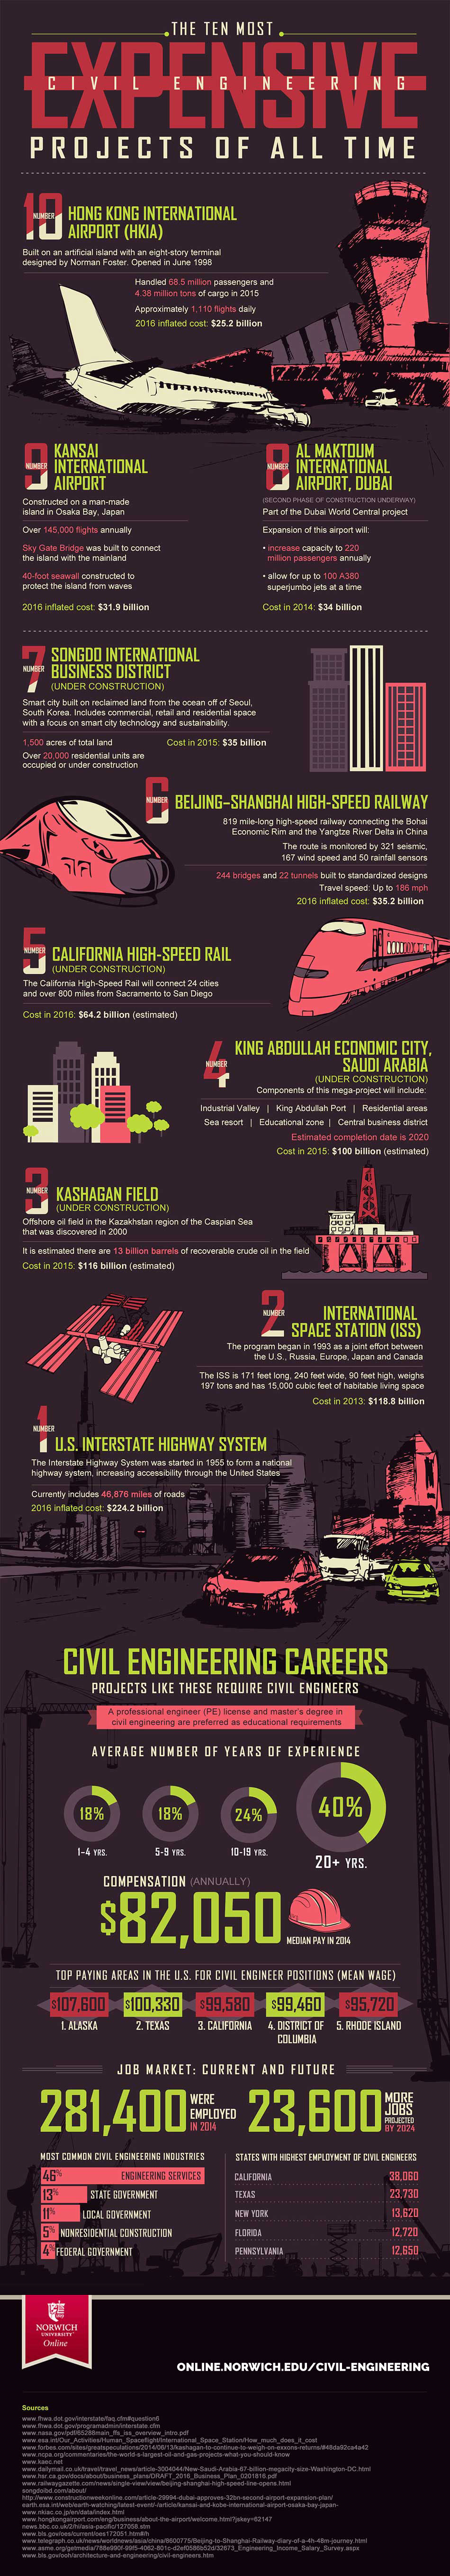 infographic on the most expsensive civil engineering projects